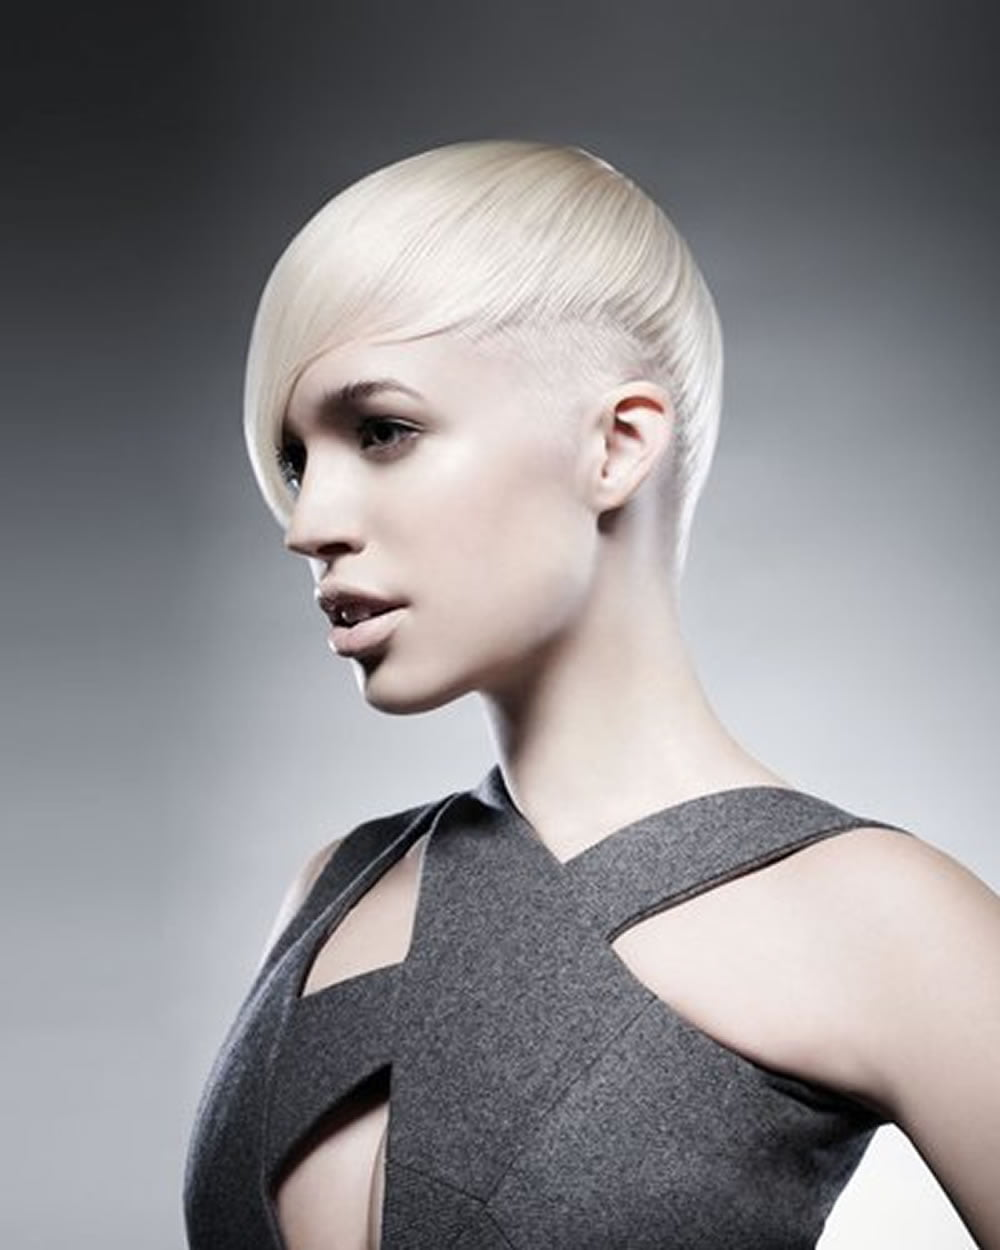 Women Easy Everyday Hairstyles For Long Hair 2019: Easy Short Hairstyles And Pixie Hair Cut Images For Women